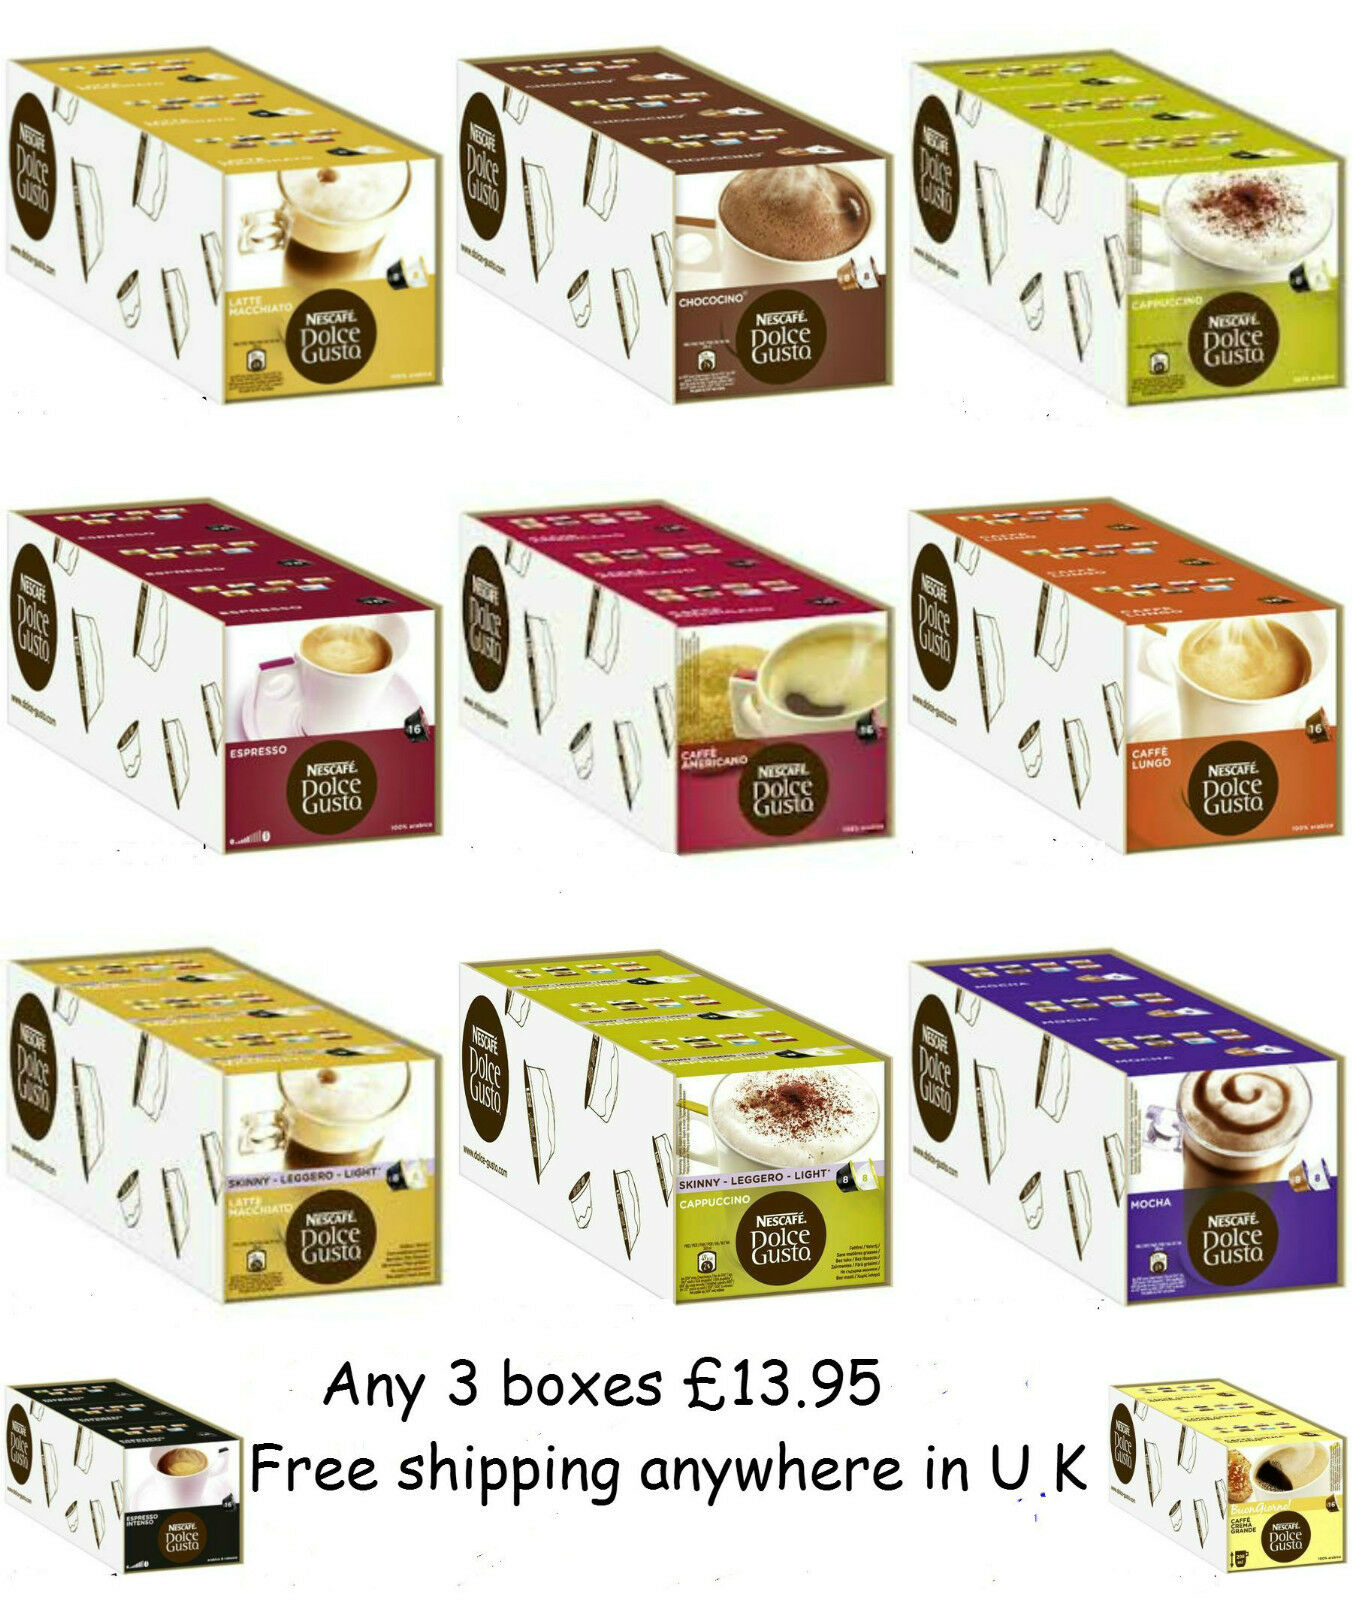 Nescafe Dolce Gusto Coffee Capsules- 3 Box Of 16 Pods - Choice From 11 Flavours